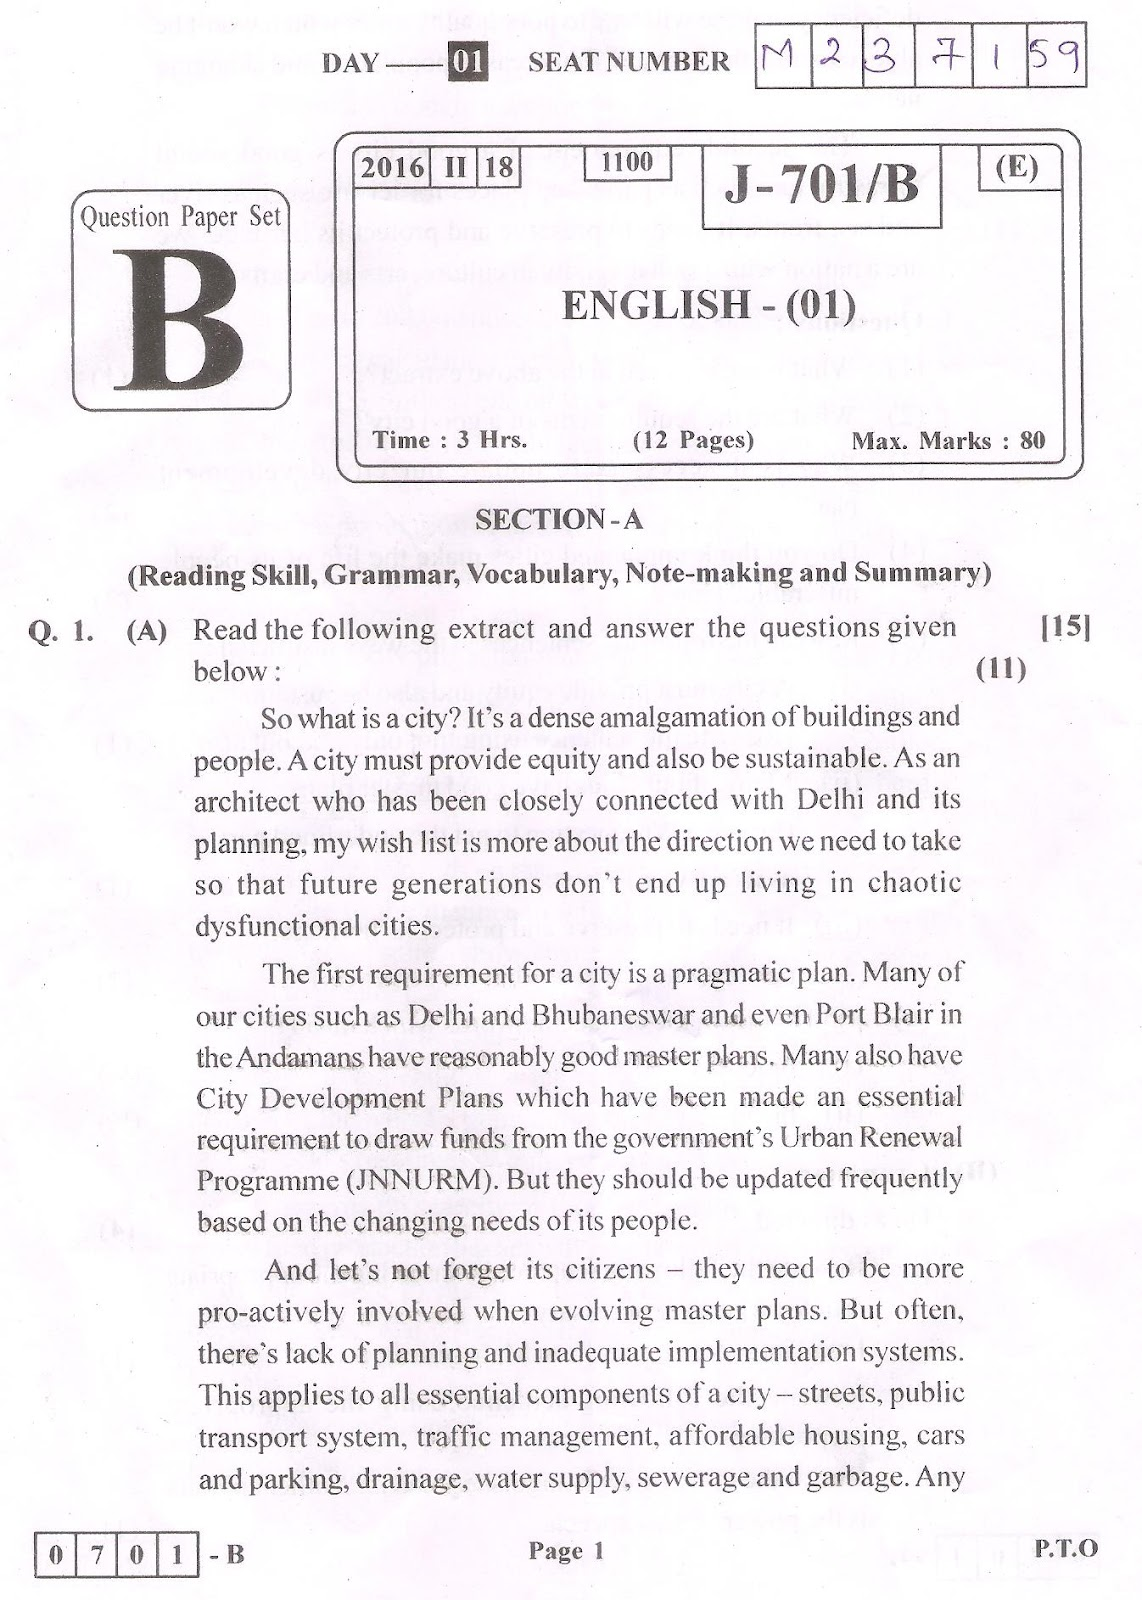 Omtex classes 12th english march 2016 board paper set b 12th english march 2016 board paper set b malvernweather Gallery